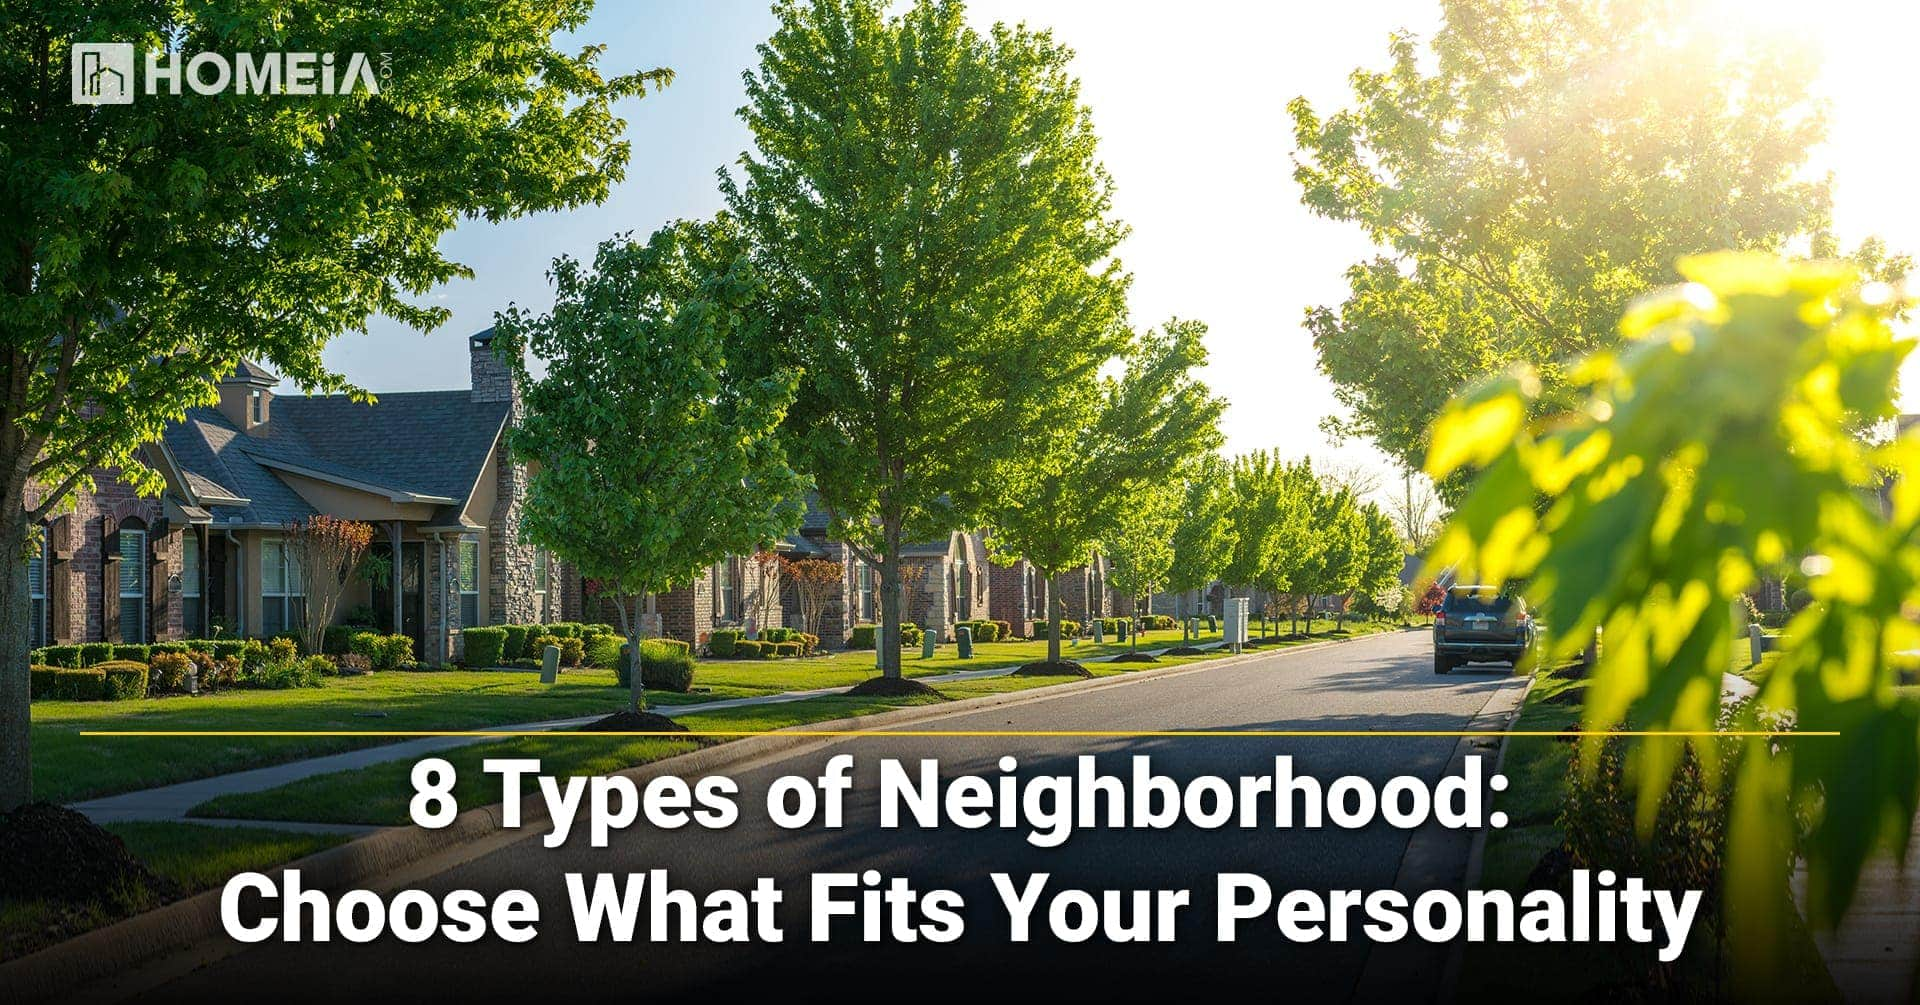 8 Types of Neighborhood: Choose What Fits Your Personality